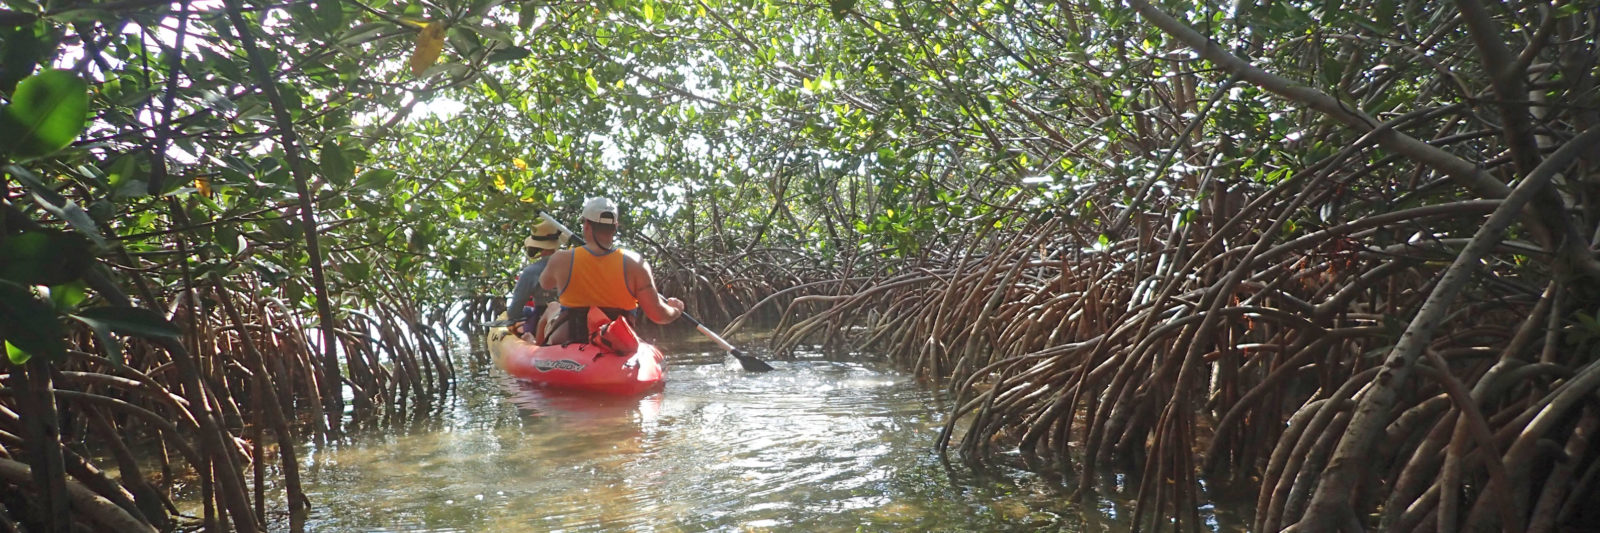 Paddling a mangrove tunnel